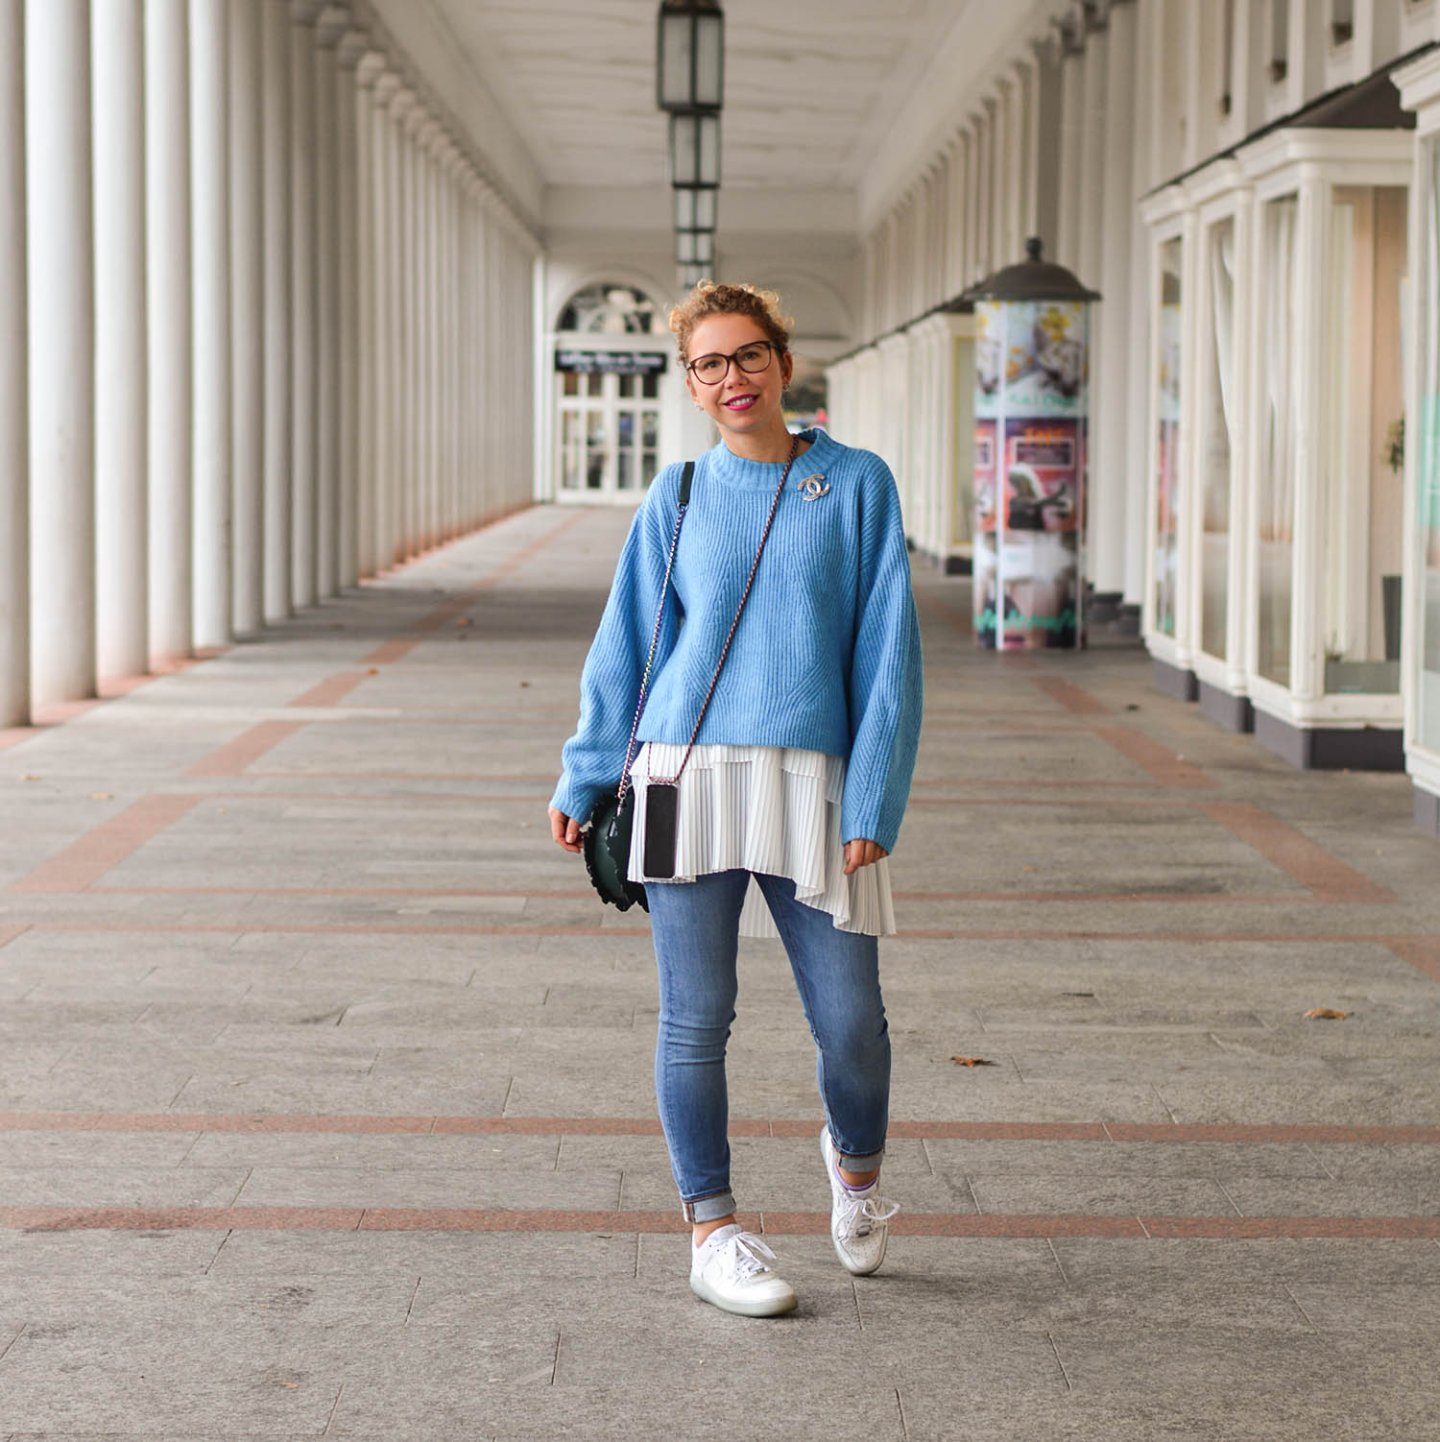 Baby-Blue-Sweater-Long-Blouse-Nike-Sneakers-Casual-Winter-Outfit-Kationette-Fashionblogger-Germany